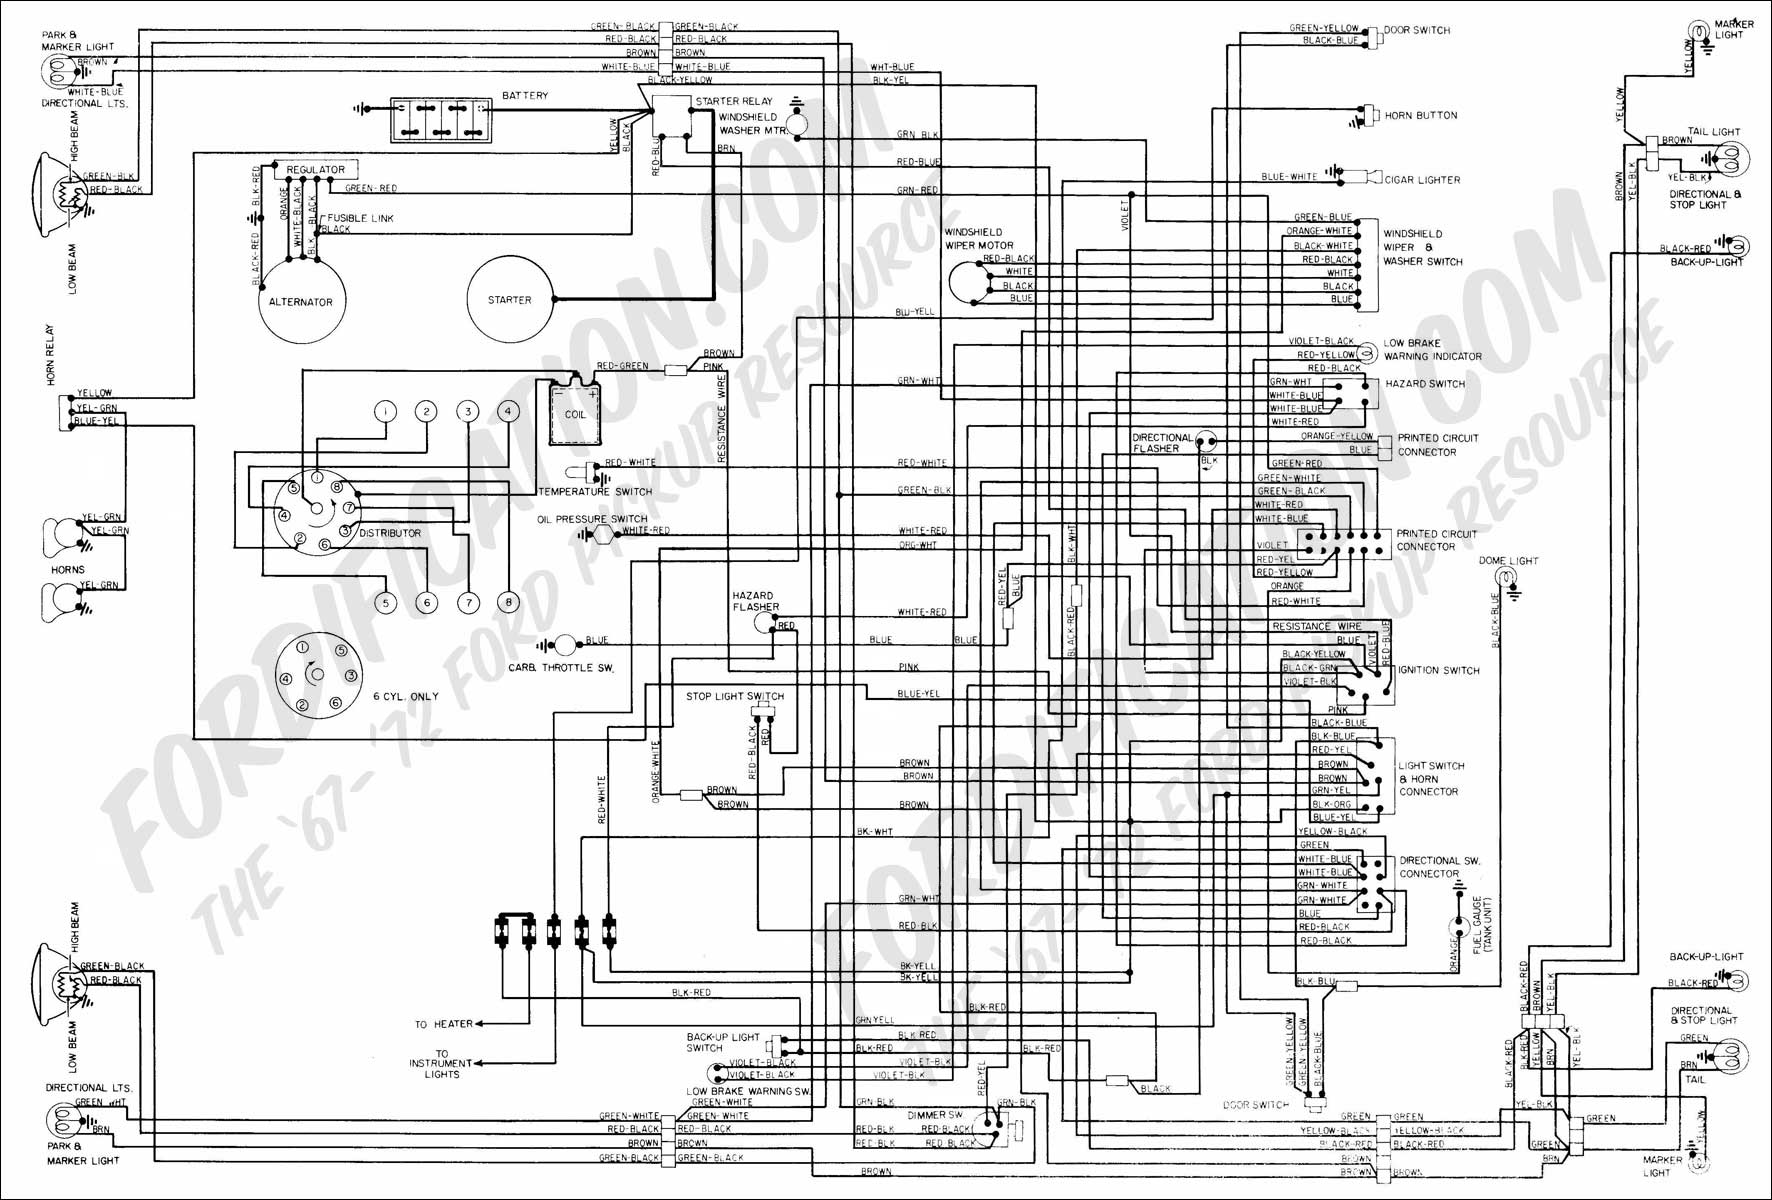 wiring diagram for a 1968 ford mustang the wiring diagram 1968 mustang headlight wiring diagrams 1968 car wiring diagram